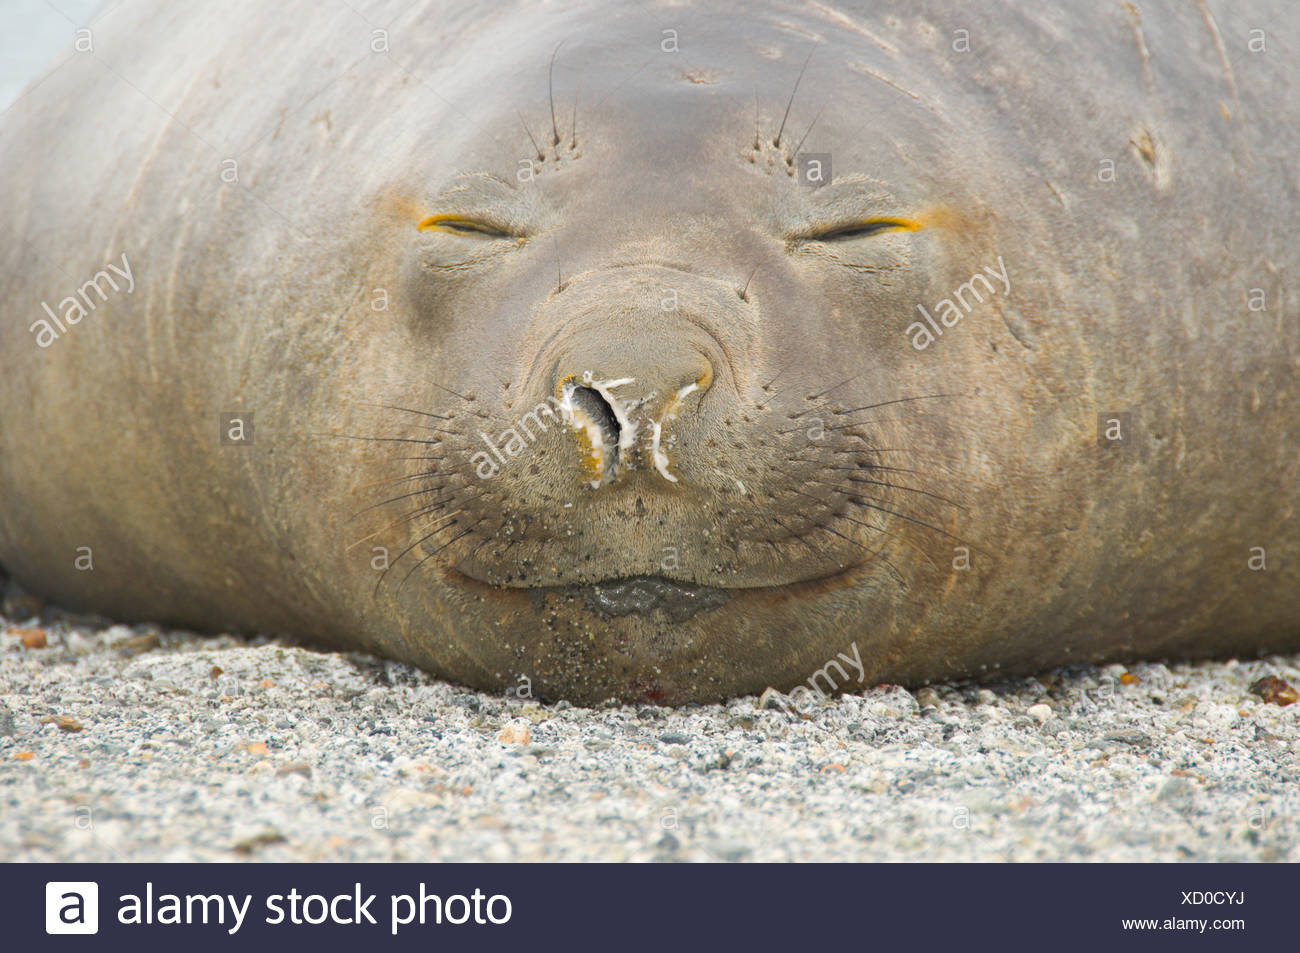 A female Southern Elephant Seal, Mirounga leonina, lounges on a beach in the Darwin Range, Patagonia, Chile - Stock Image